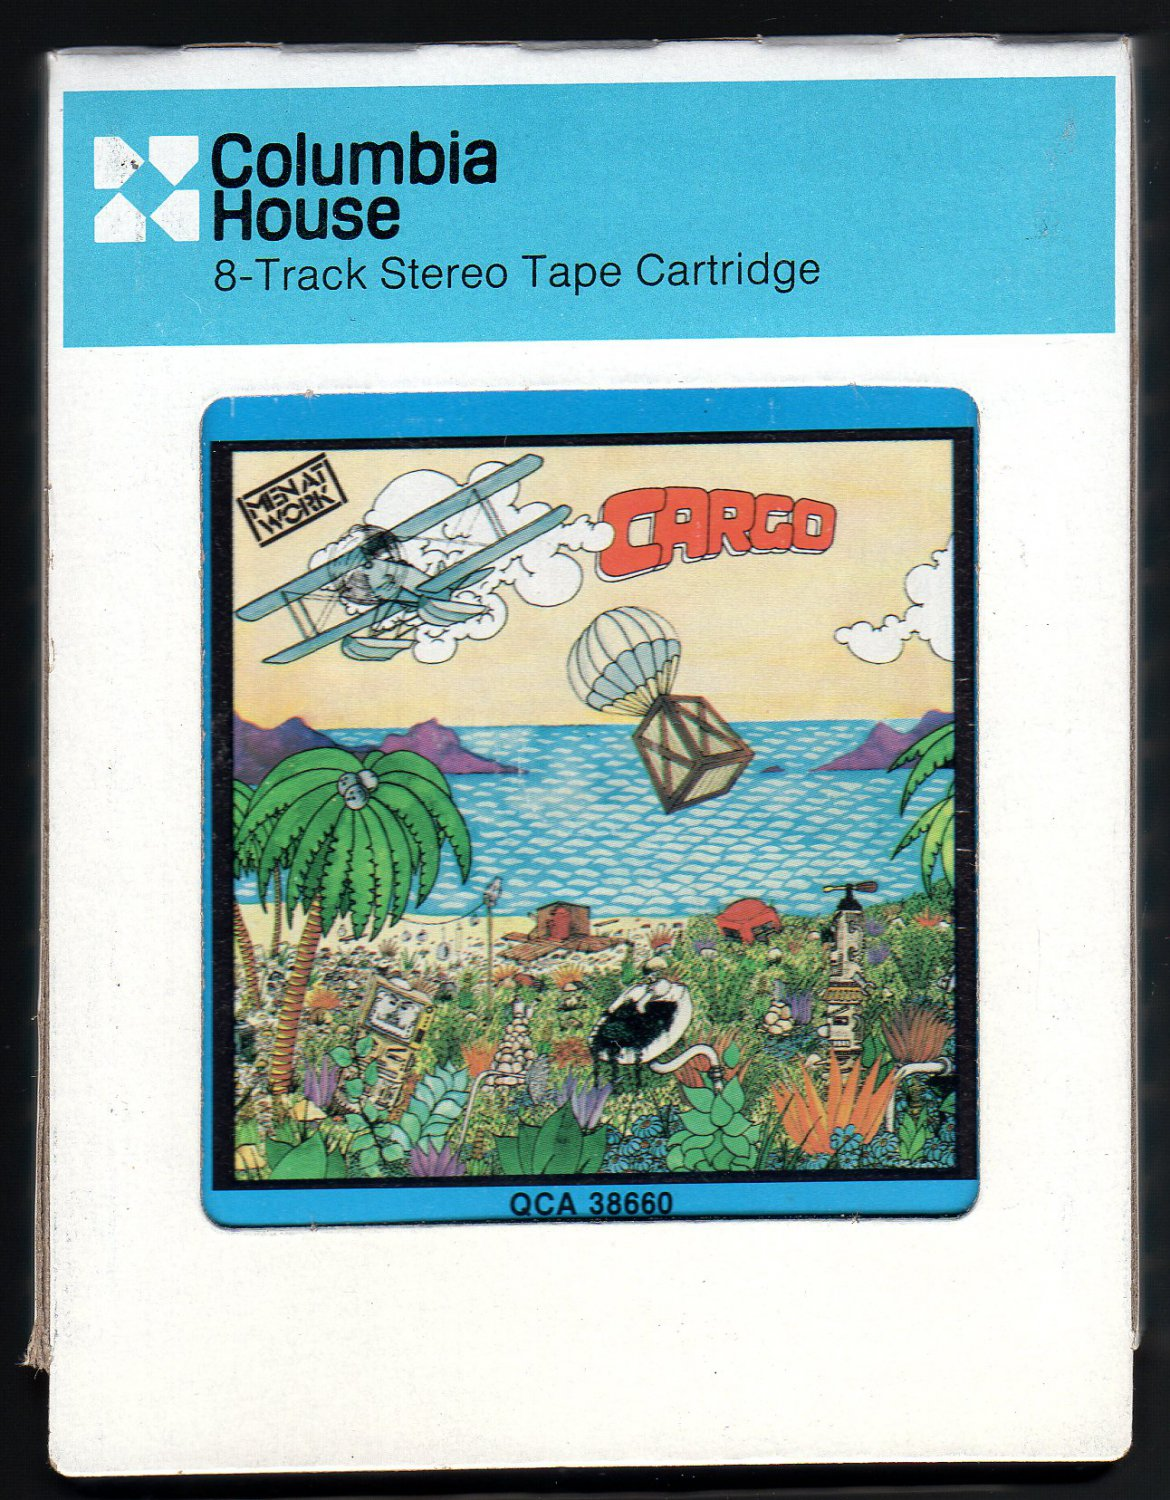 Men At Work - Cargo 1983 CRC CBS A21B 8-TRACK TAPE